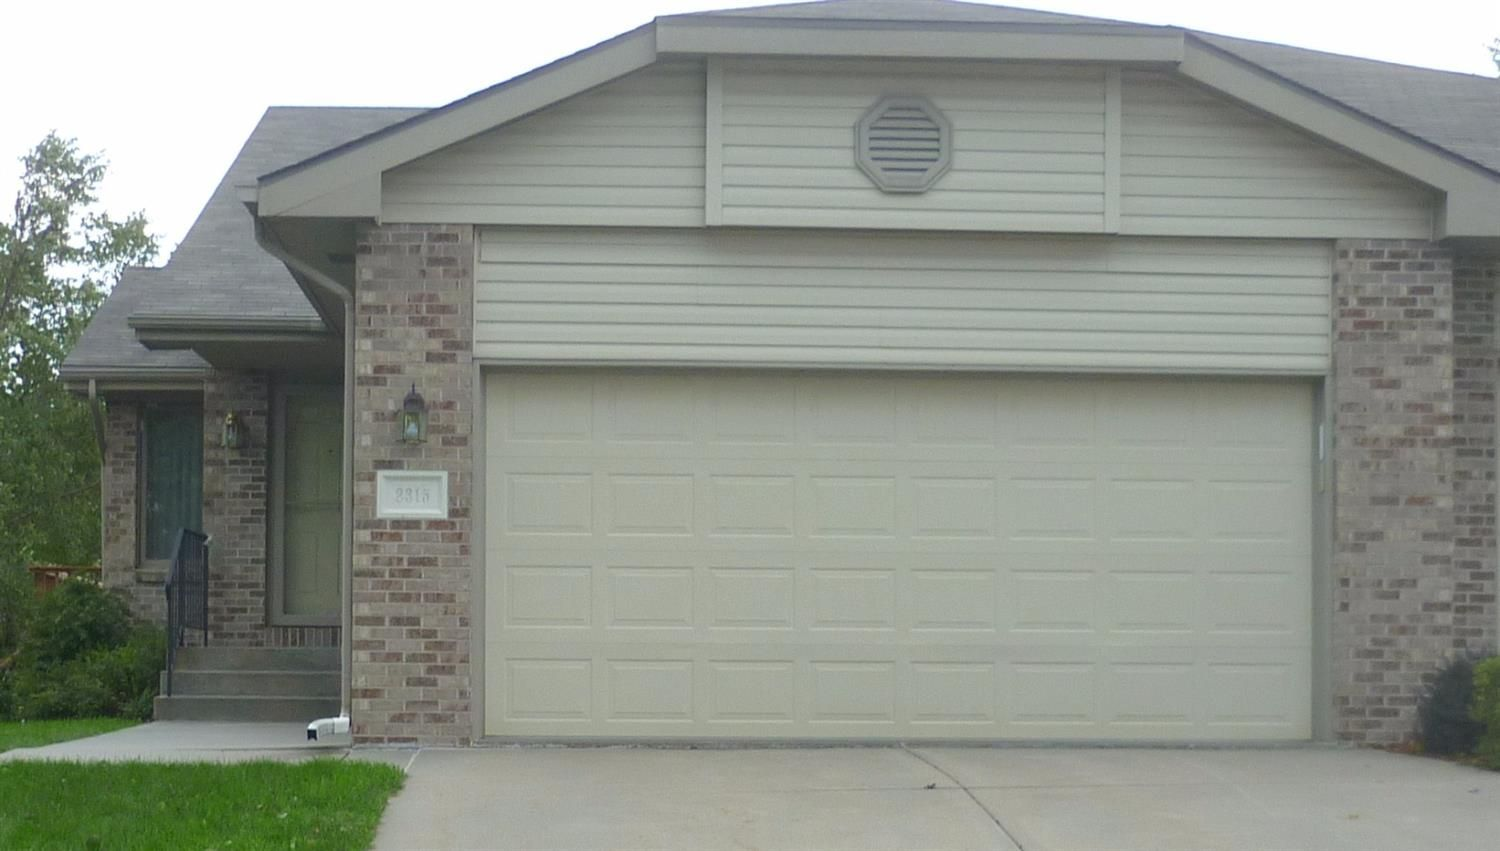 2315 Atwood Cir & 2315 Atwood Cir Lincoln NE 68521 - Recently Sold | Trulia